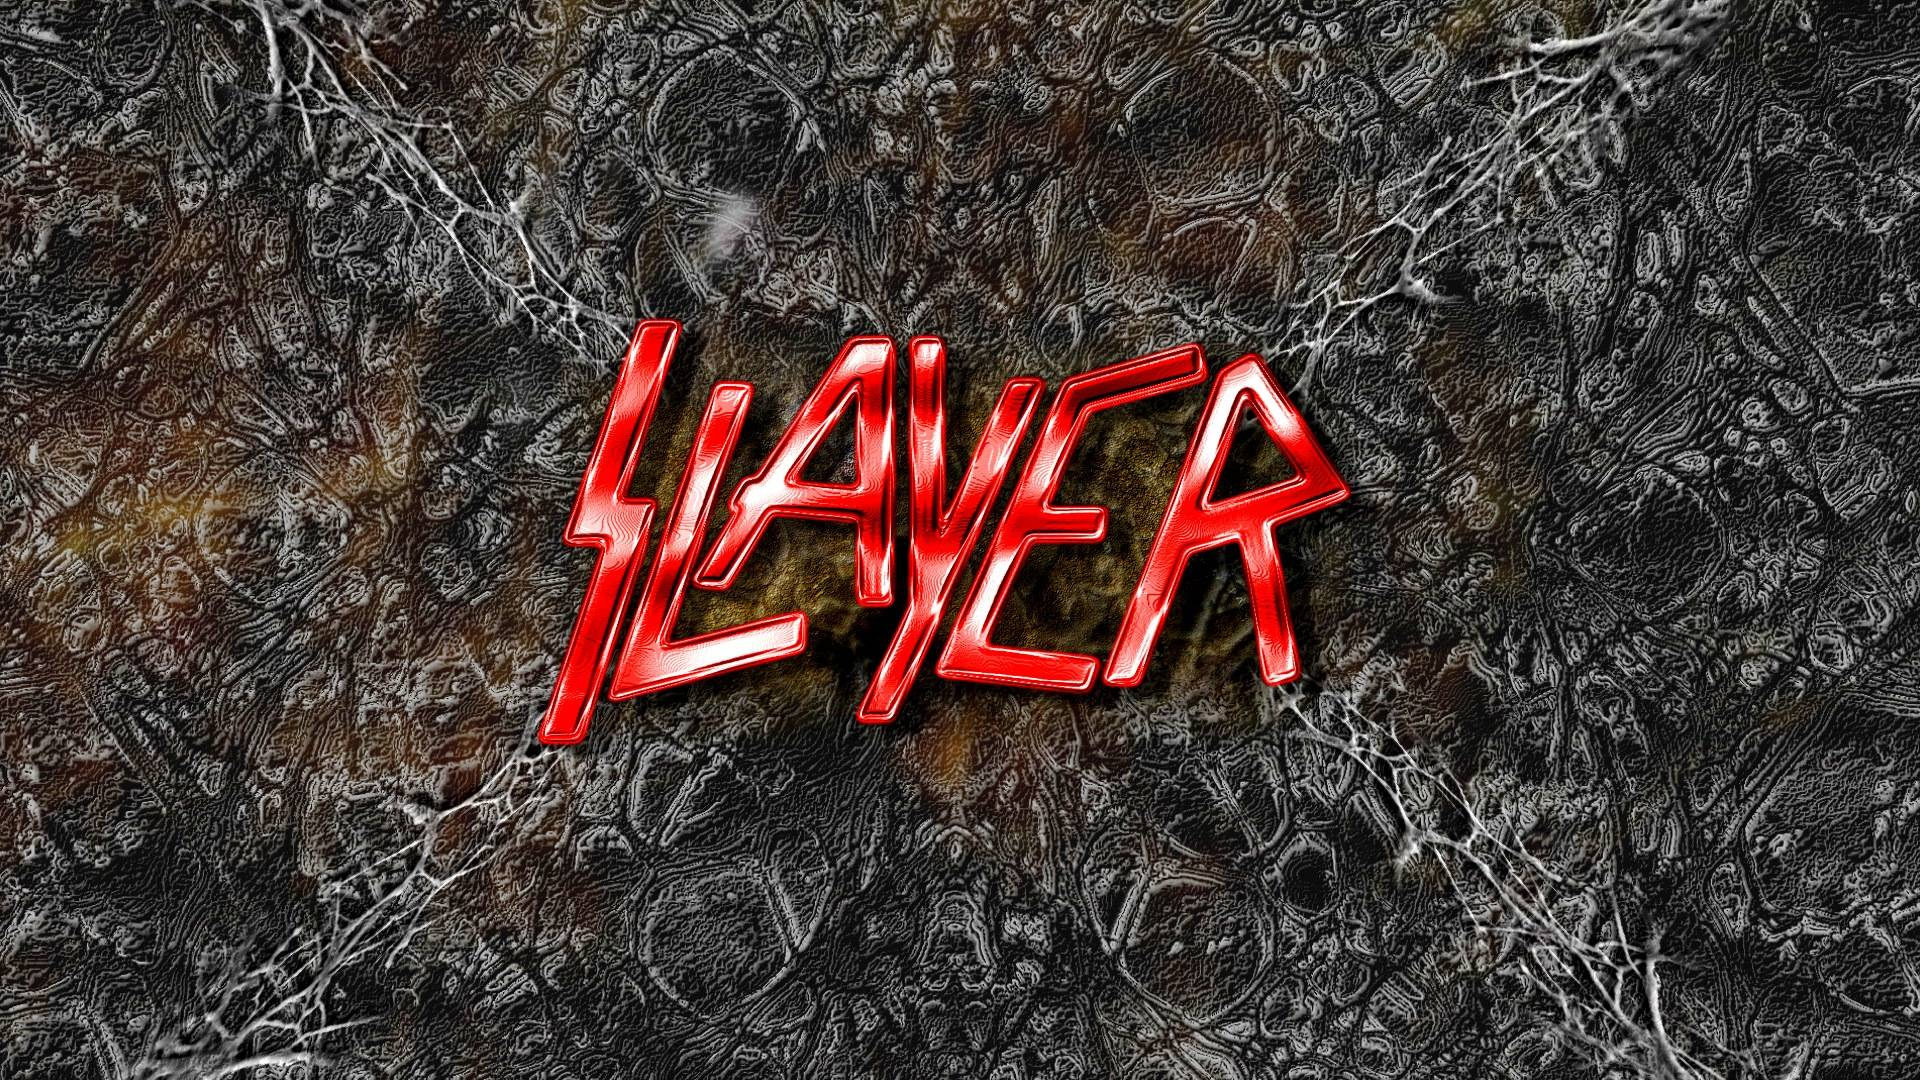 Slayer Band Wallpaper